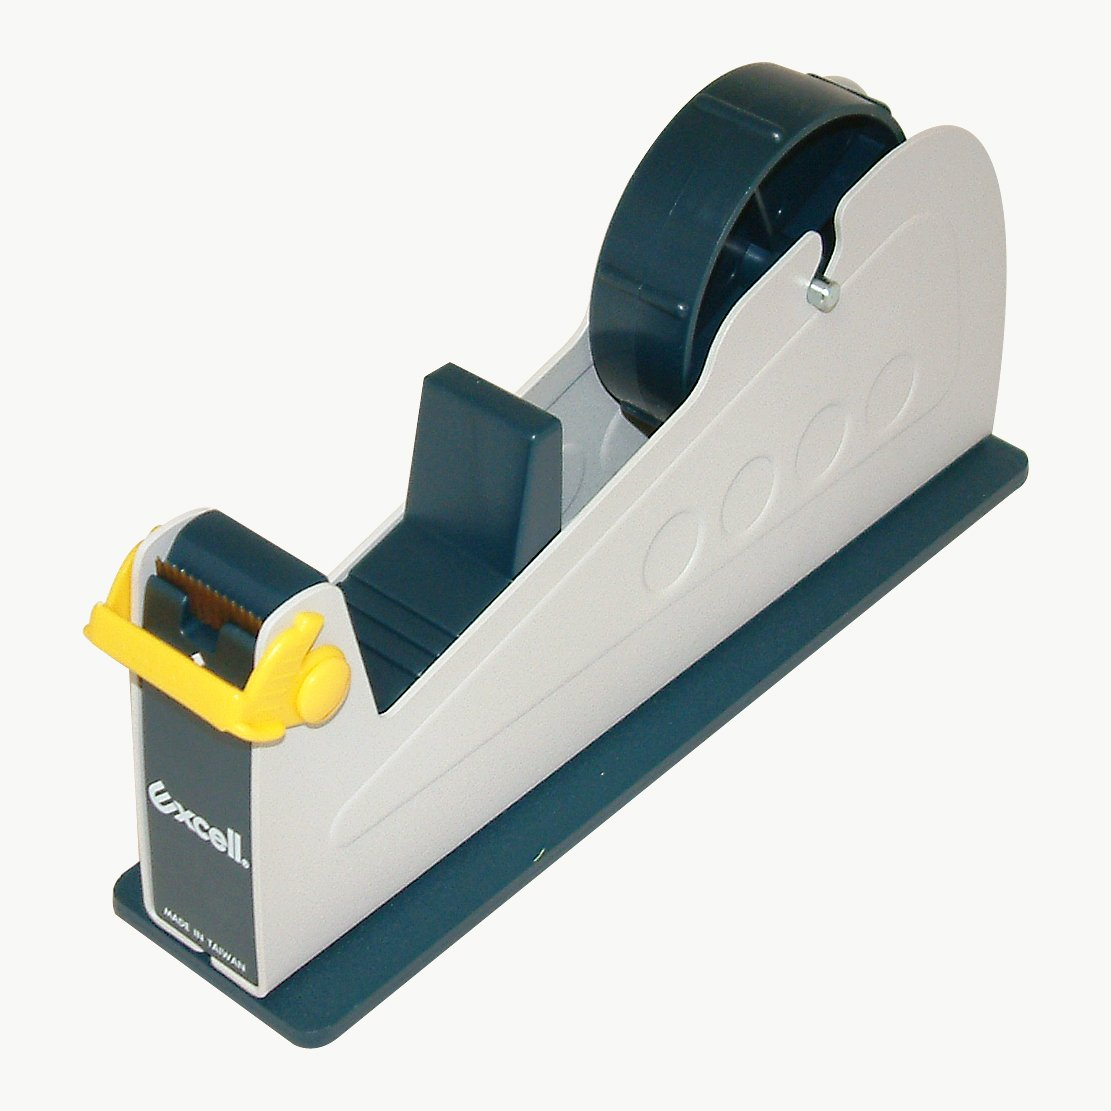 excell EX-17/1IN JVCC EX-17 Steel Desk Top Tape Dispenser: 1'' wide, Blue/Grey